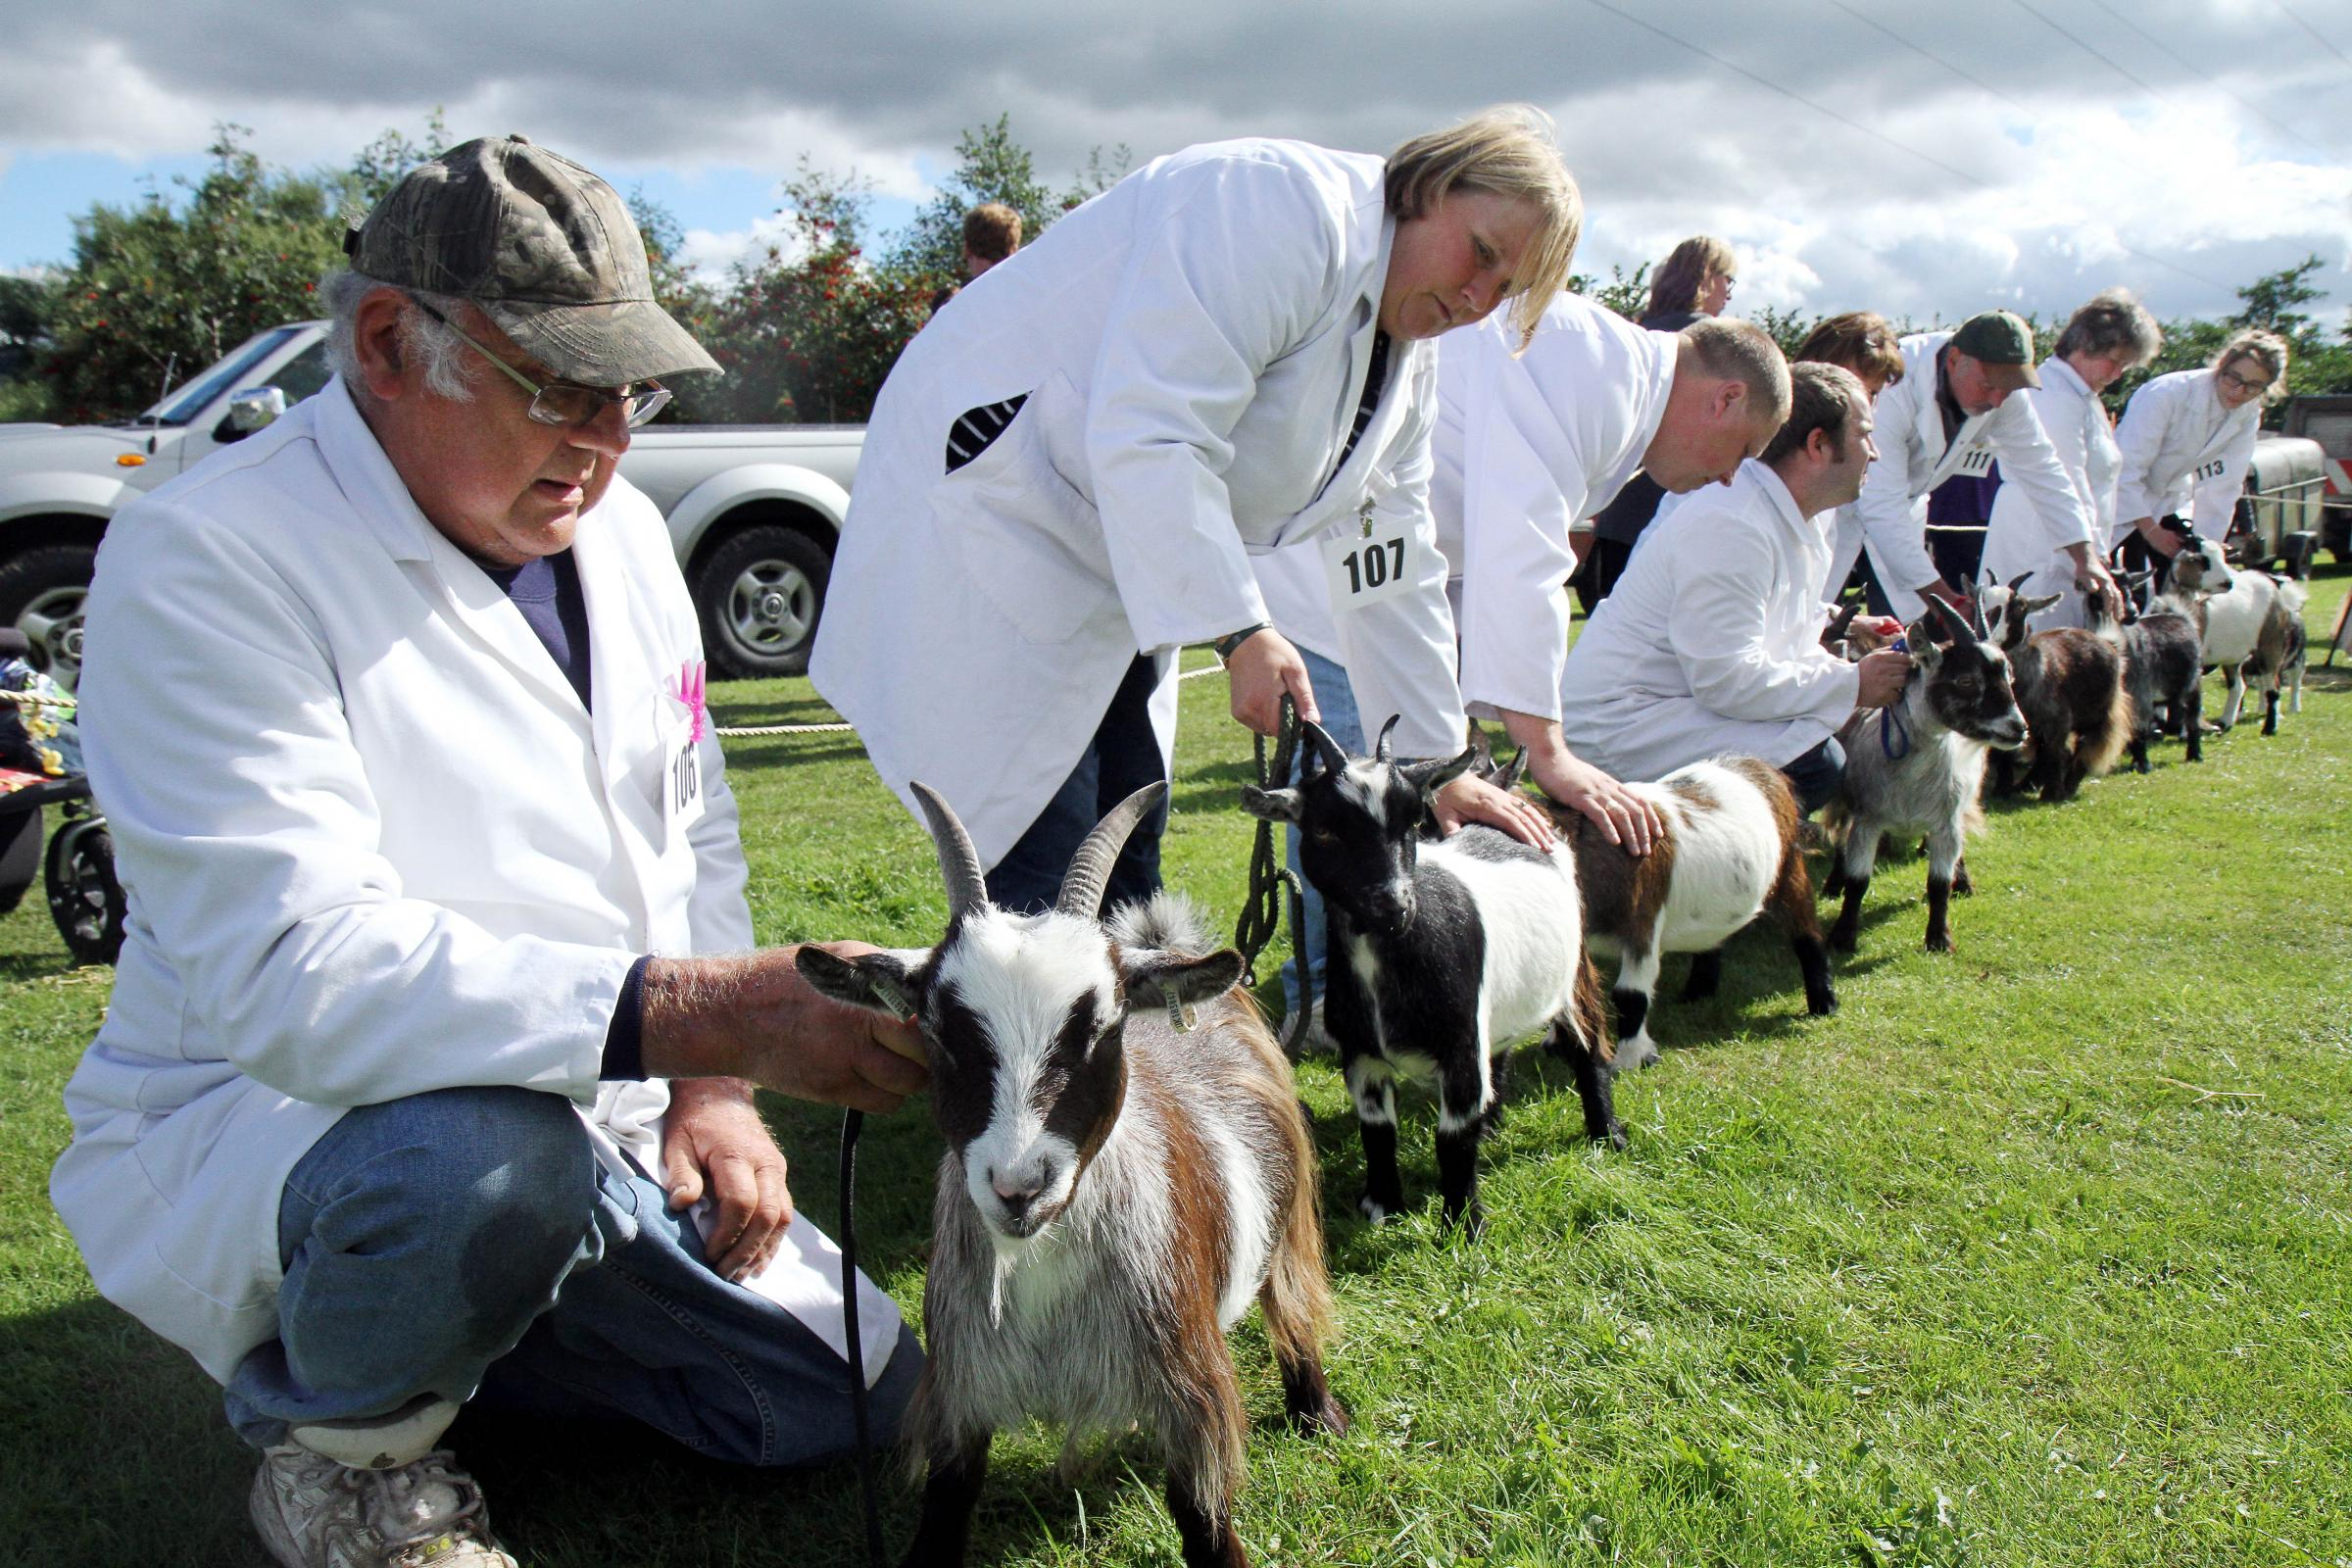 The judging of the pygmy goats at today's Keighley Show